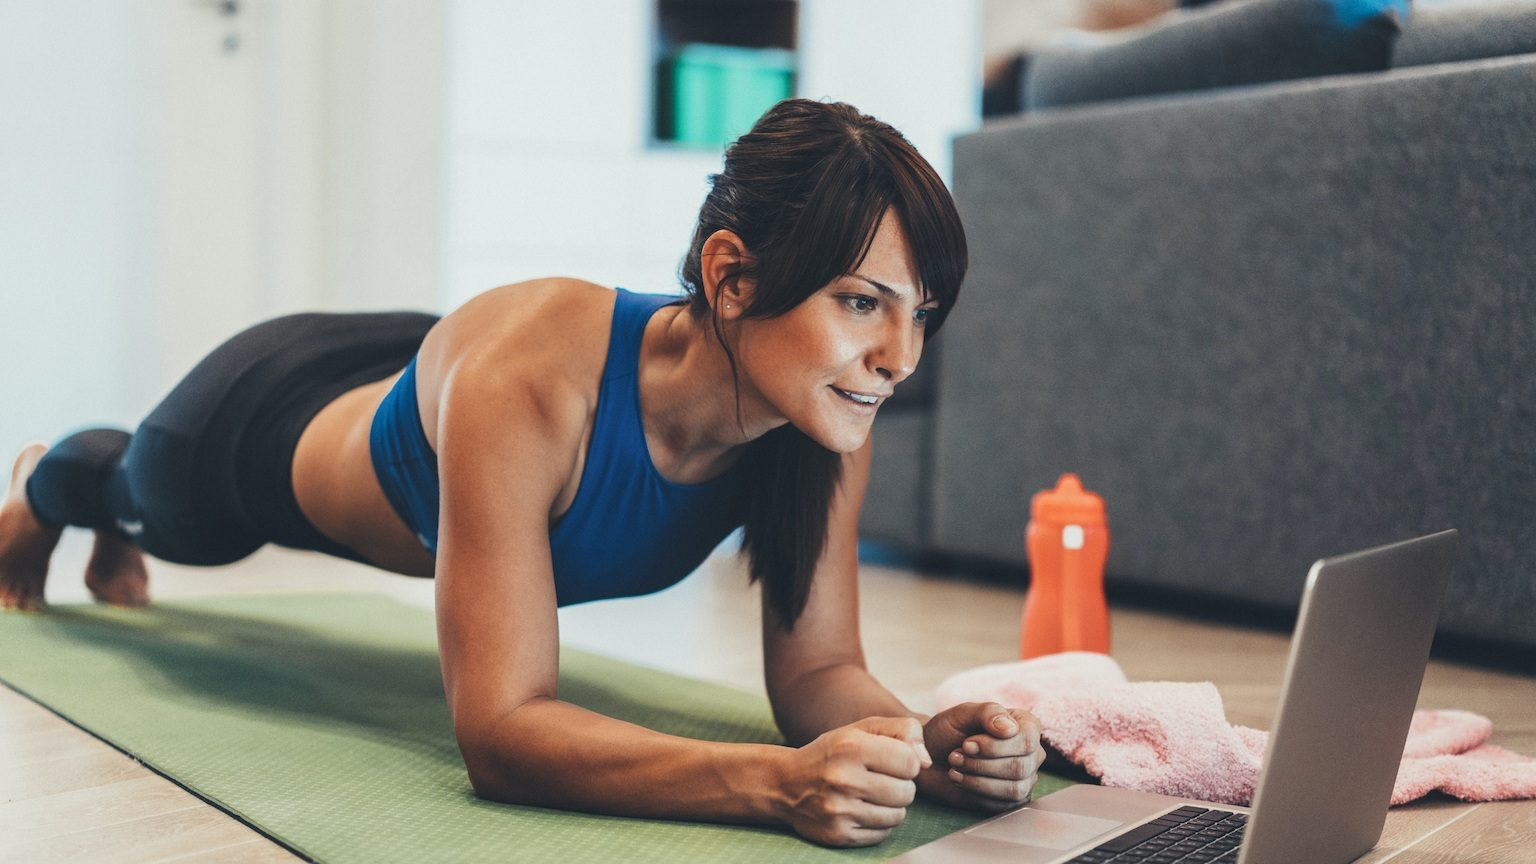 Lady working out at home